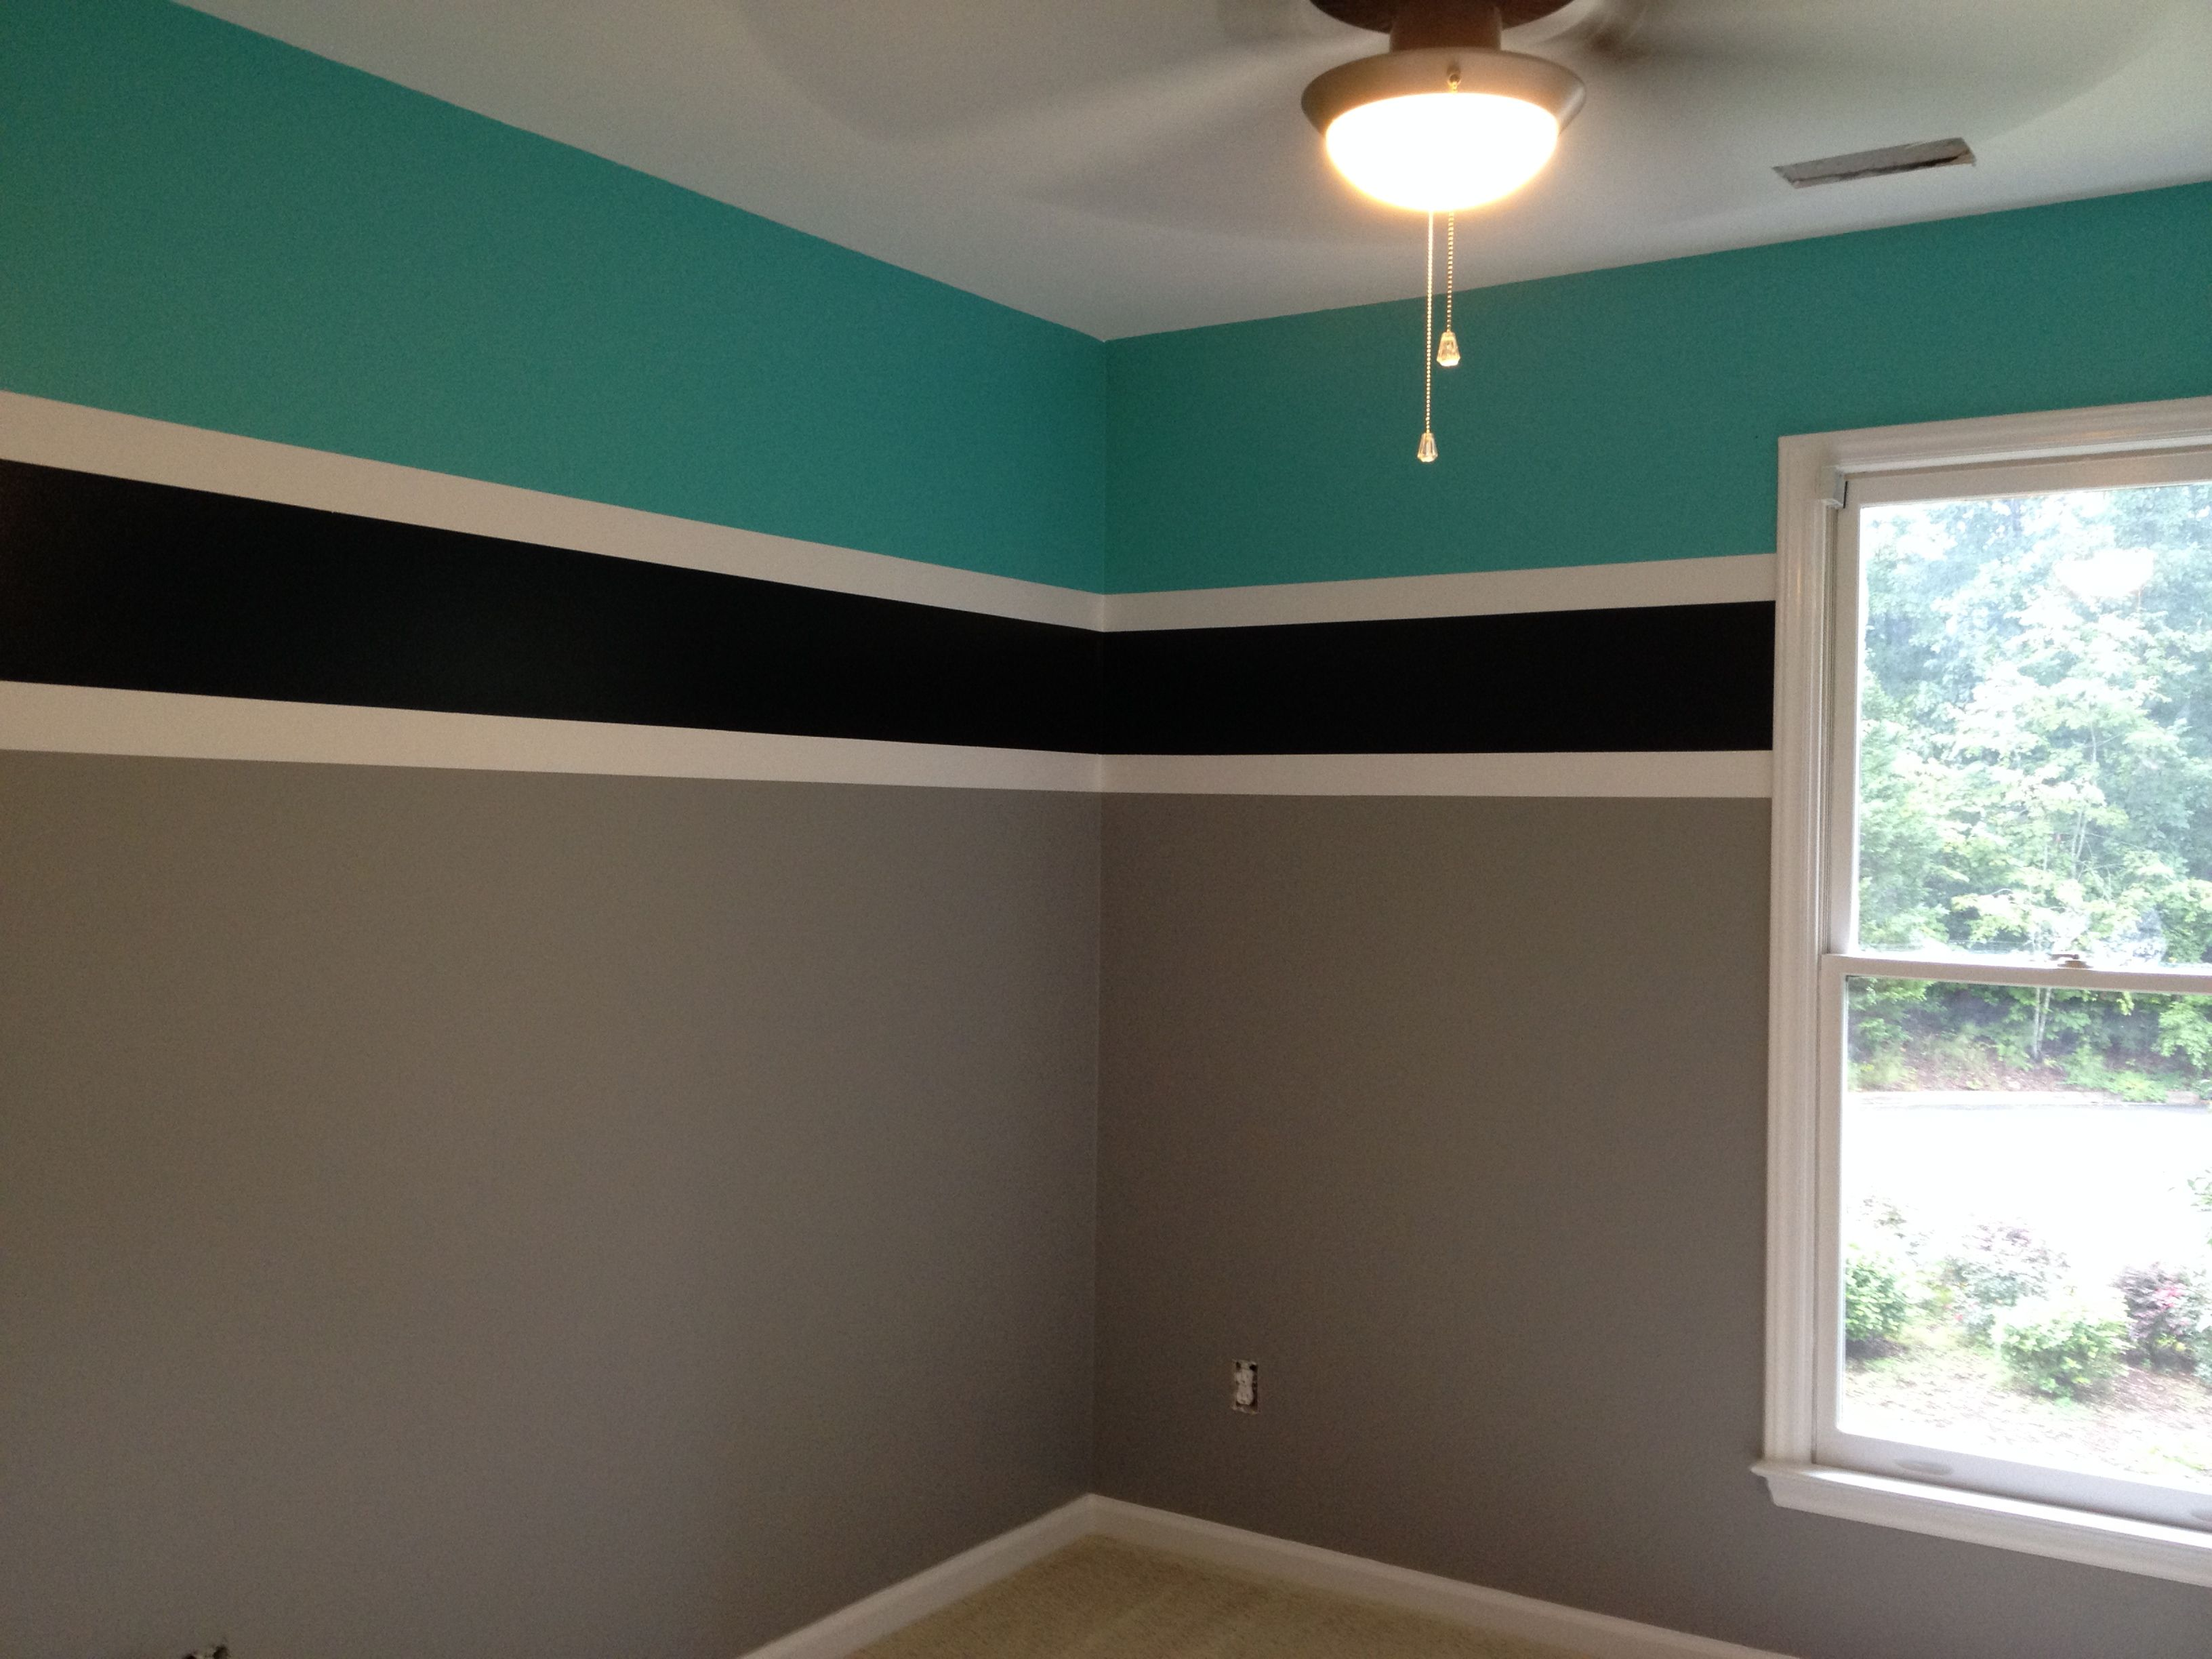 Teenage boys bedroom ideas - Final Product Teenage Boys Room Colors For A Swimmer Benjamin Moore Teal Tone